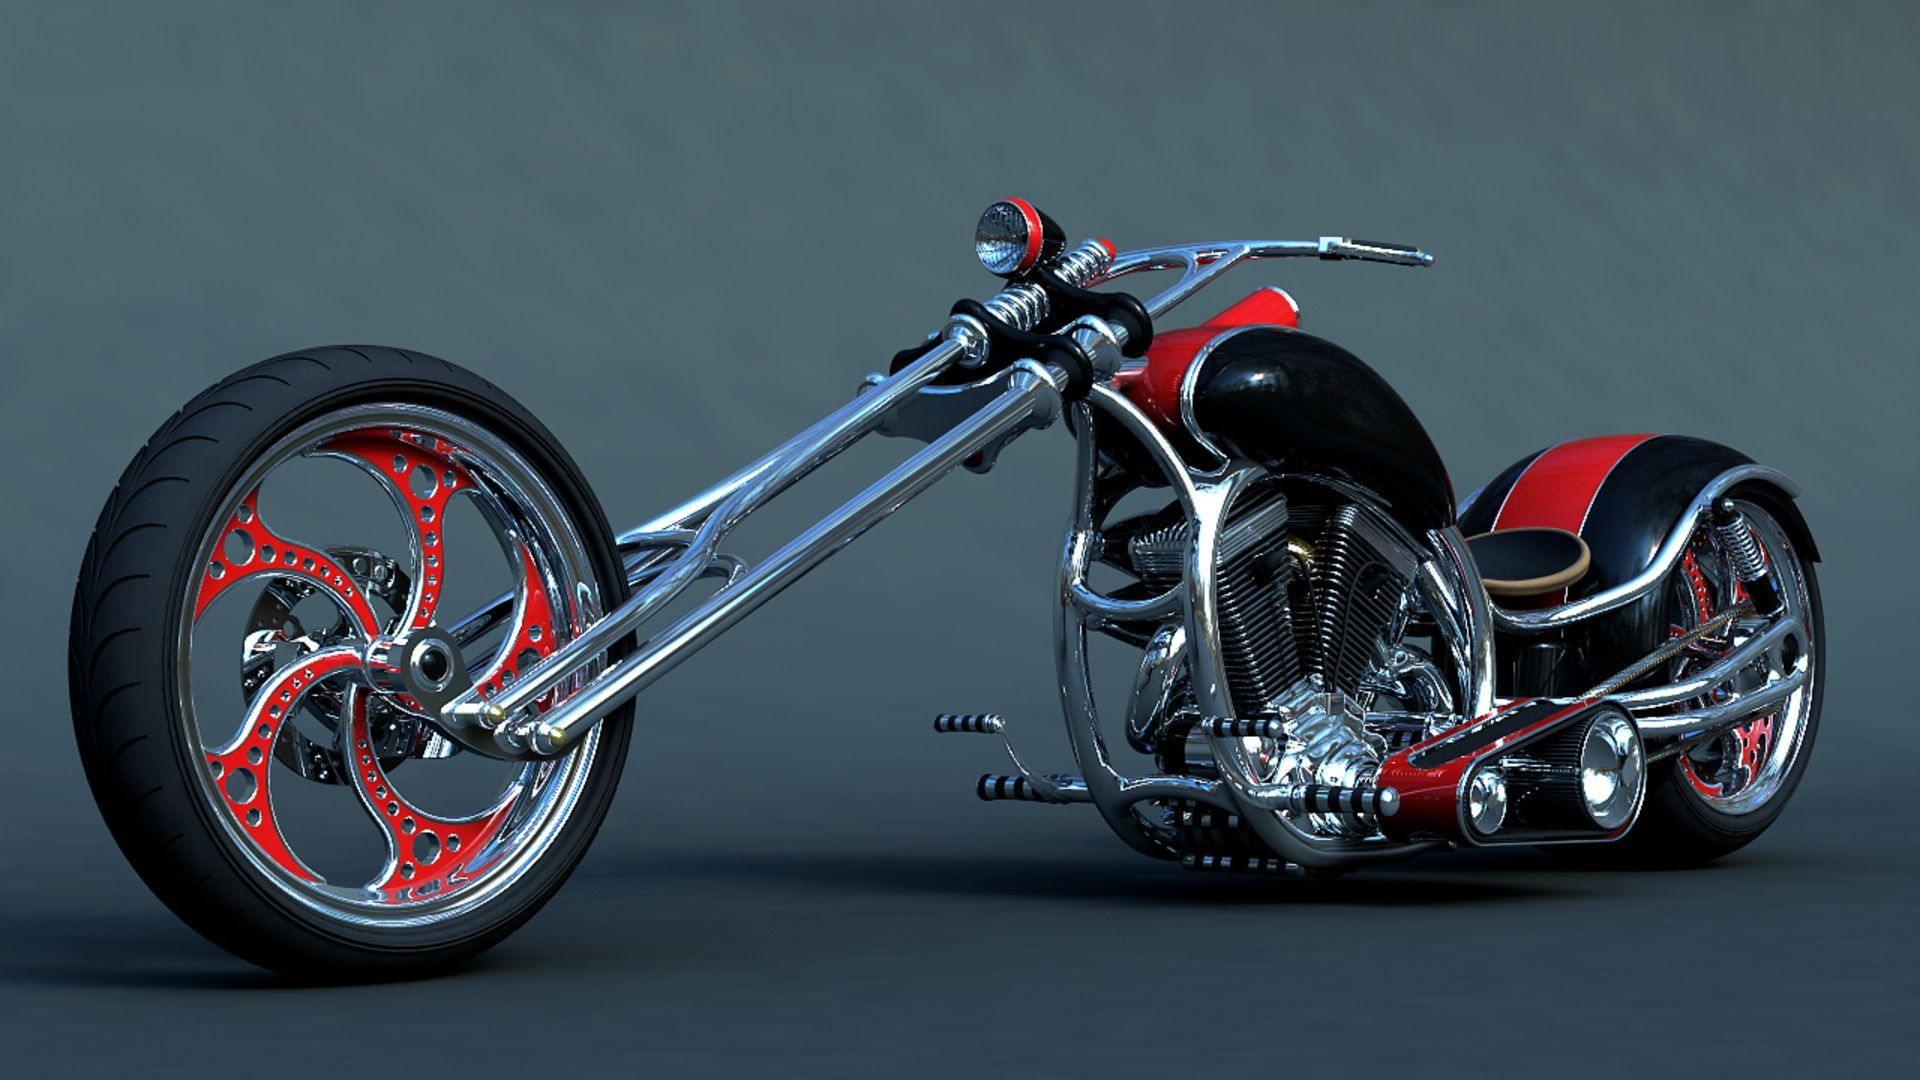 1920x1080 Mean Machine. [Desktop wallpaper 1920x1080] | Motorcycle Desktop ...